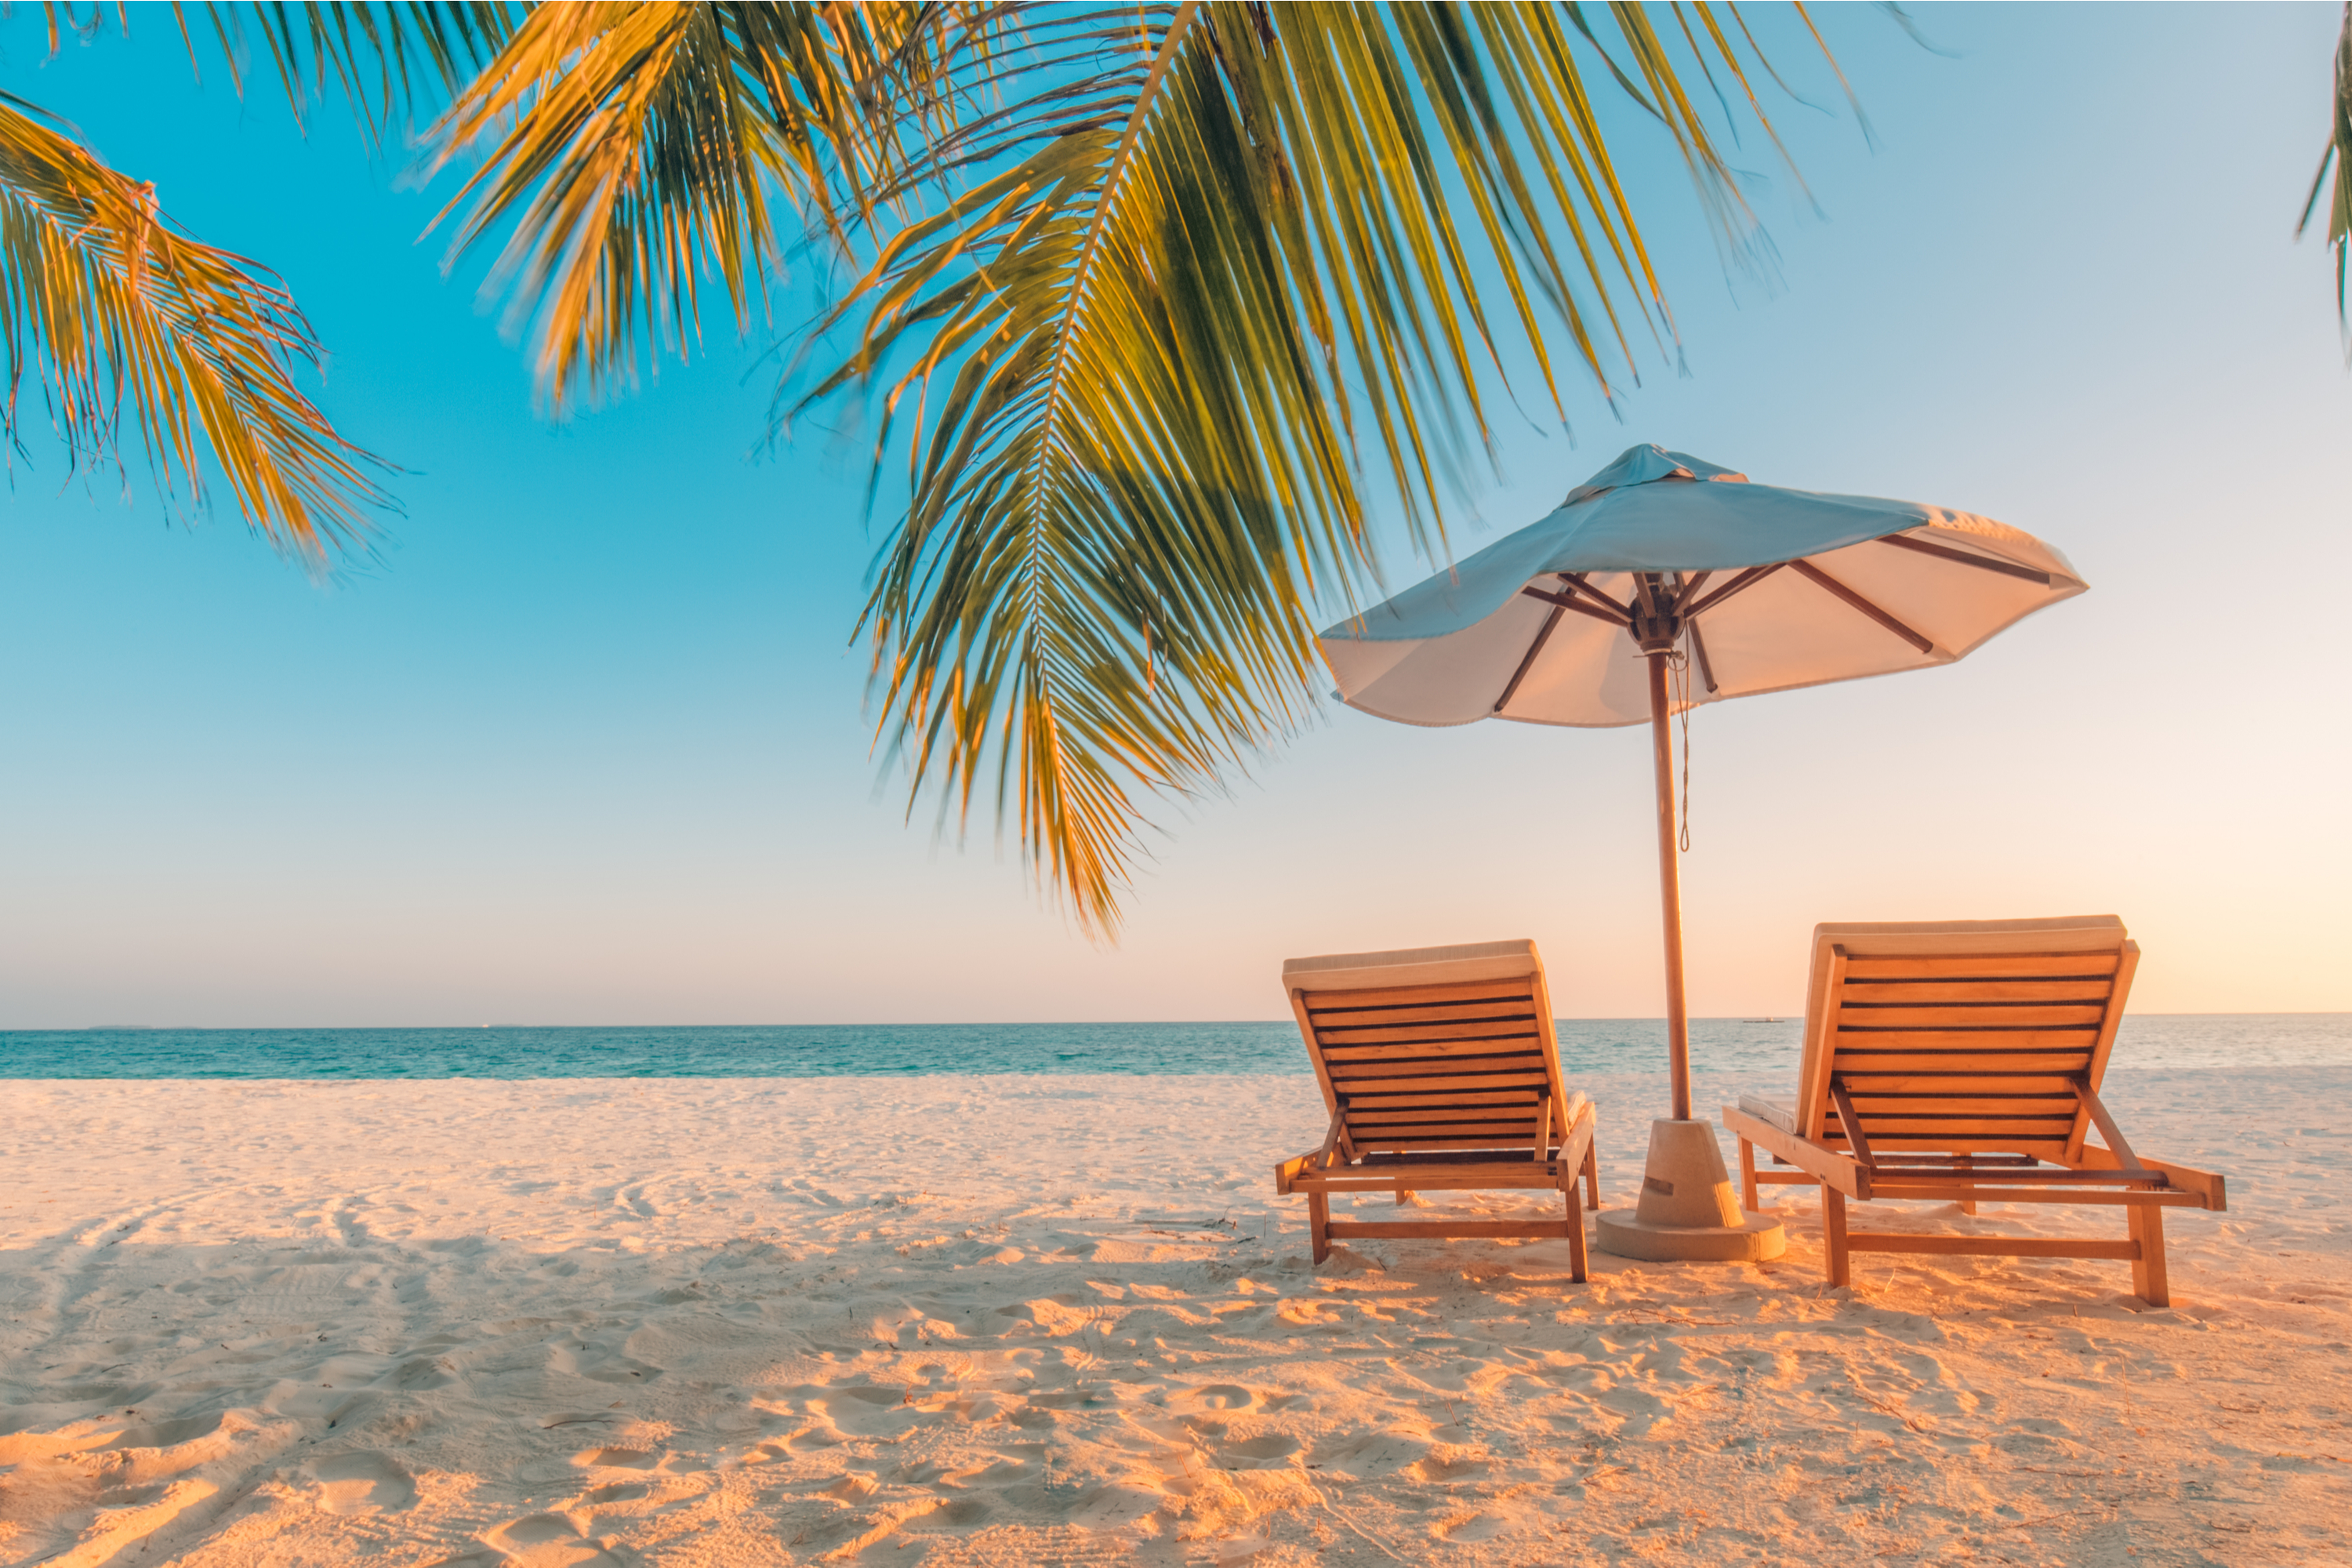 Things You Should Never Do On A Beach | beach etiquette | beach | how to act on a beach | vacations